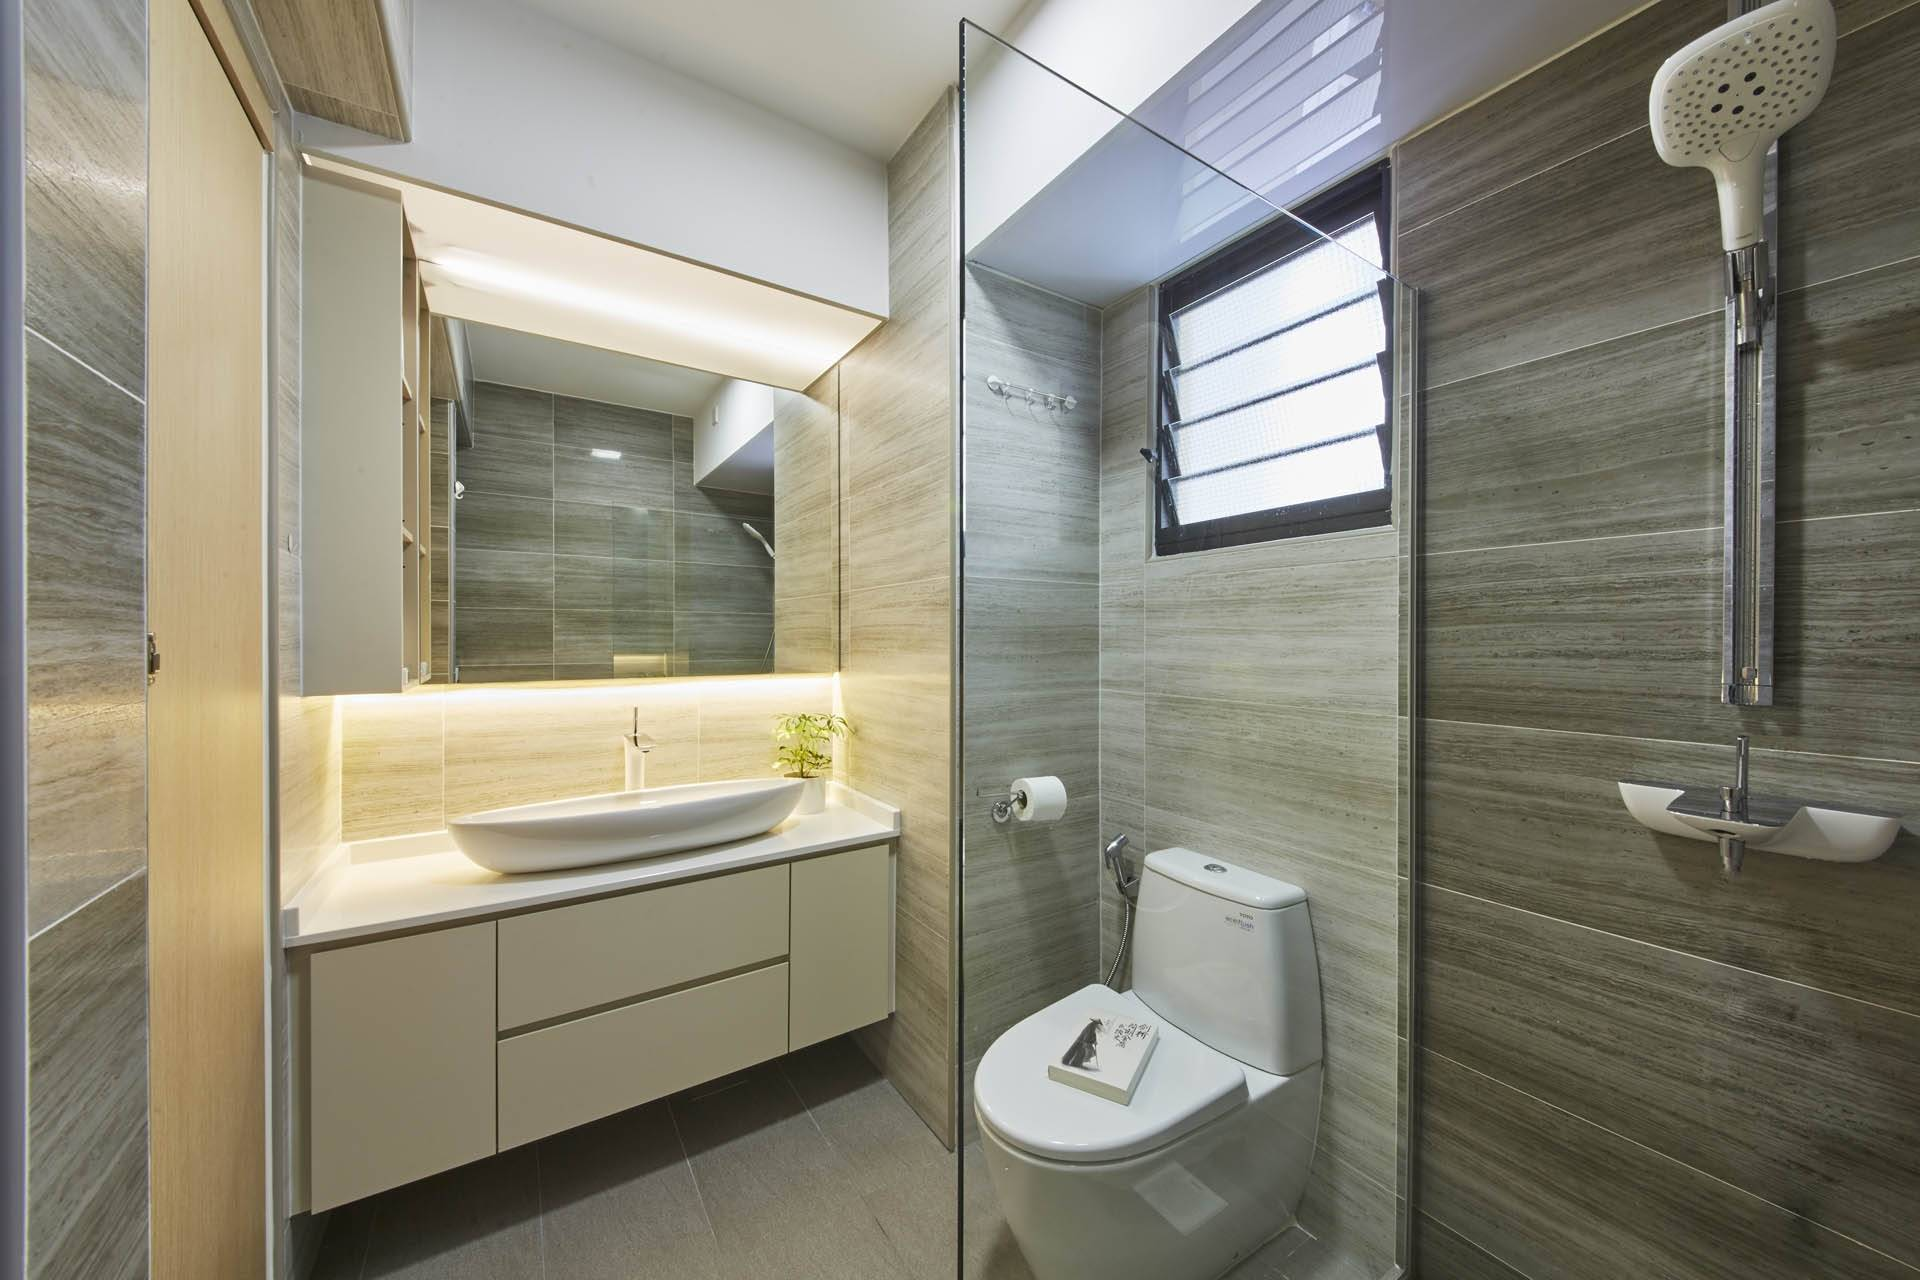 Hdb bathroom design for Pics of bathroom designs